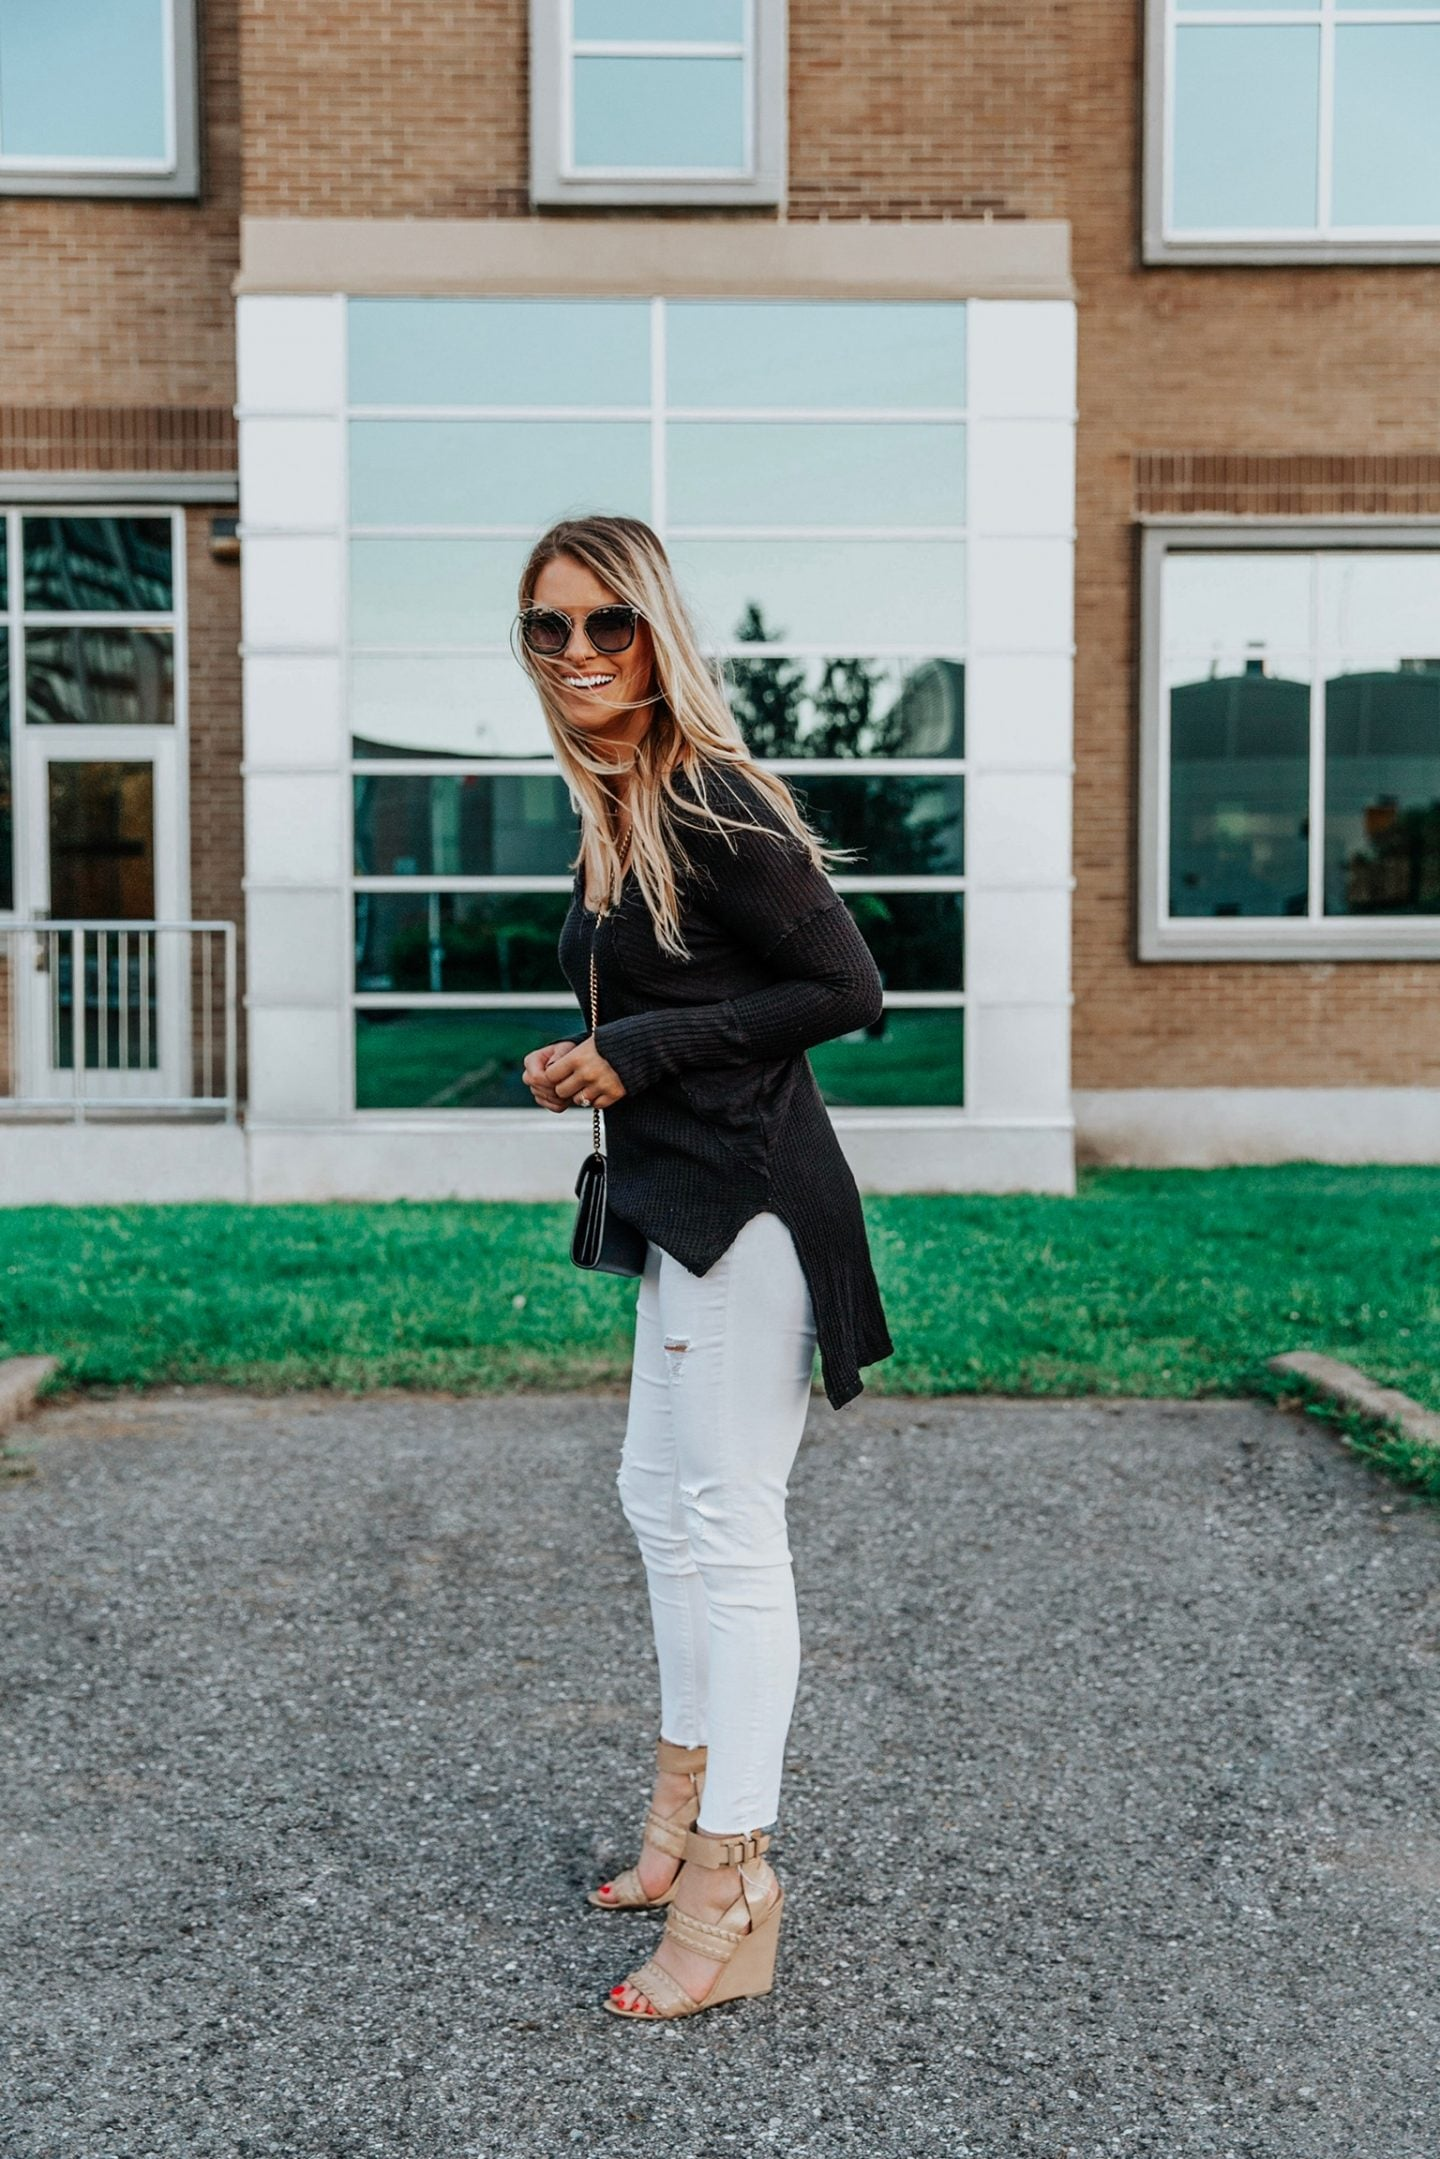 Labor Day sales, 1 person, black and white outfit